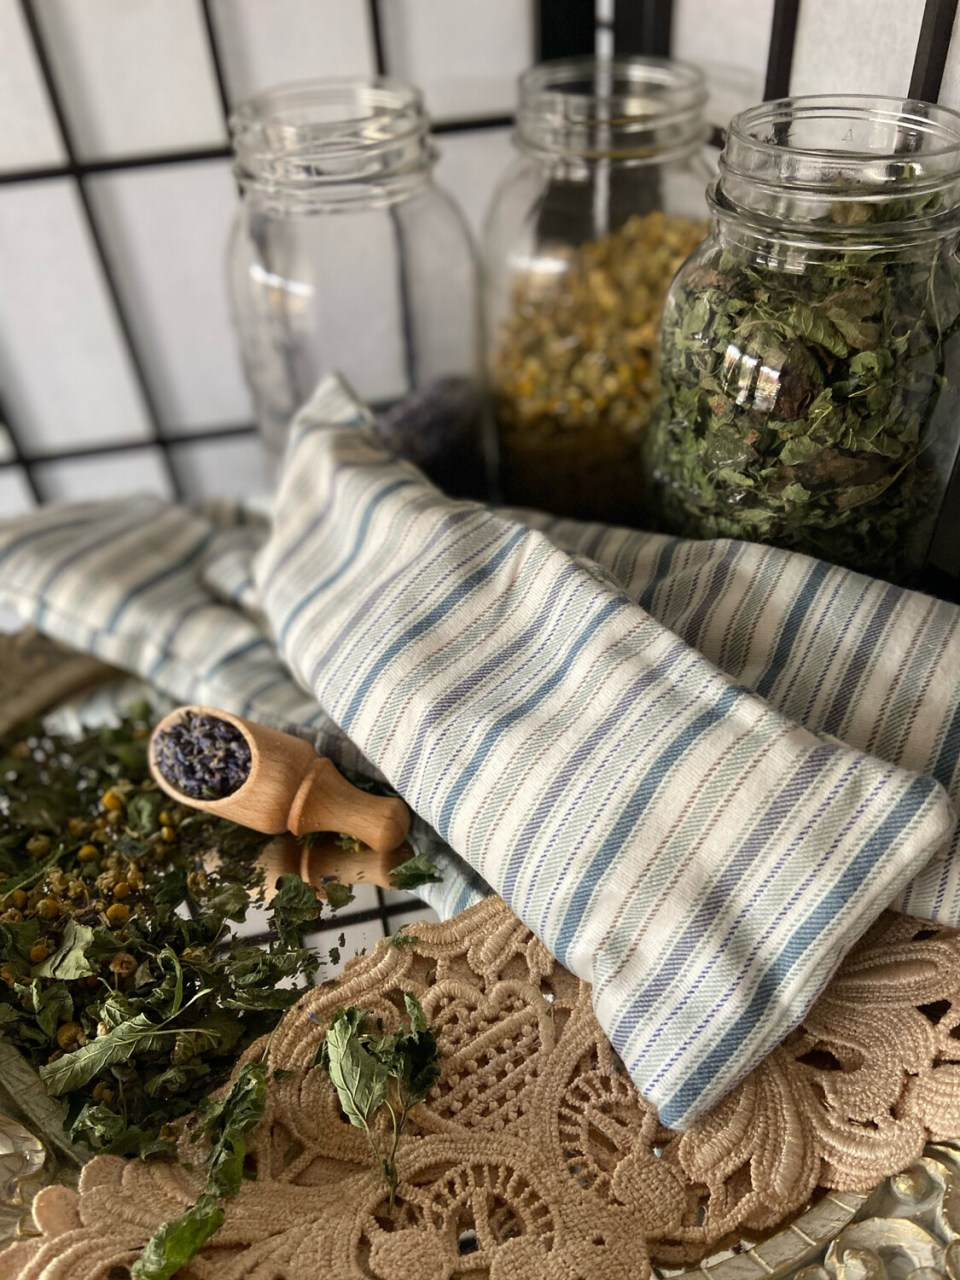 Soothing Lemon Balm/lavender/chamomile Rice Sachet Medium